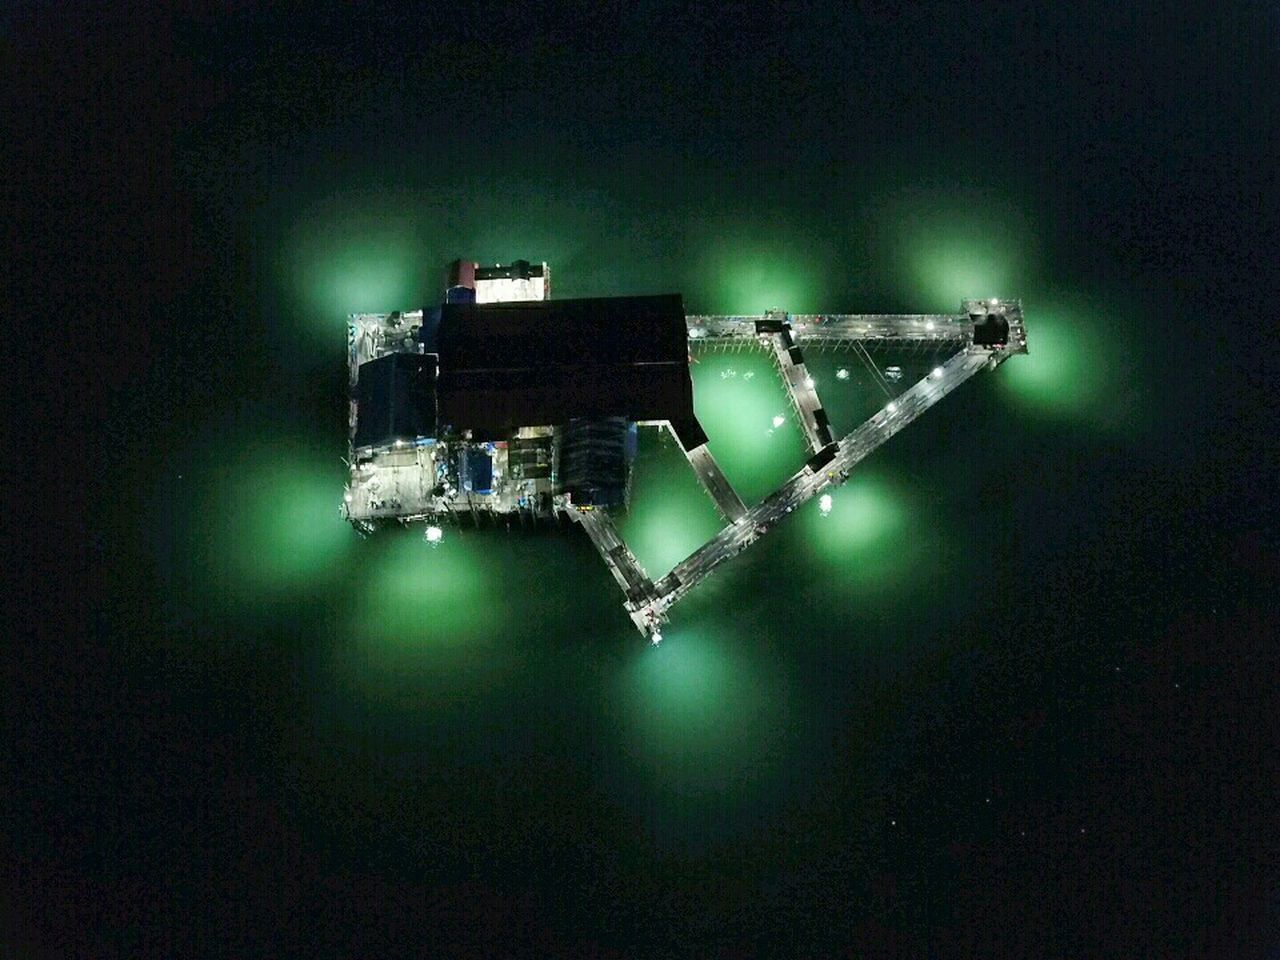 Dronephotography Droneshot Fromsky Night View View Dji Drone  Fishing Sea Above The Sea Above No People Technology Astronomy